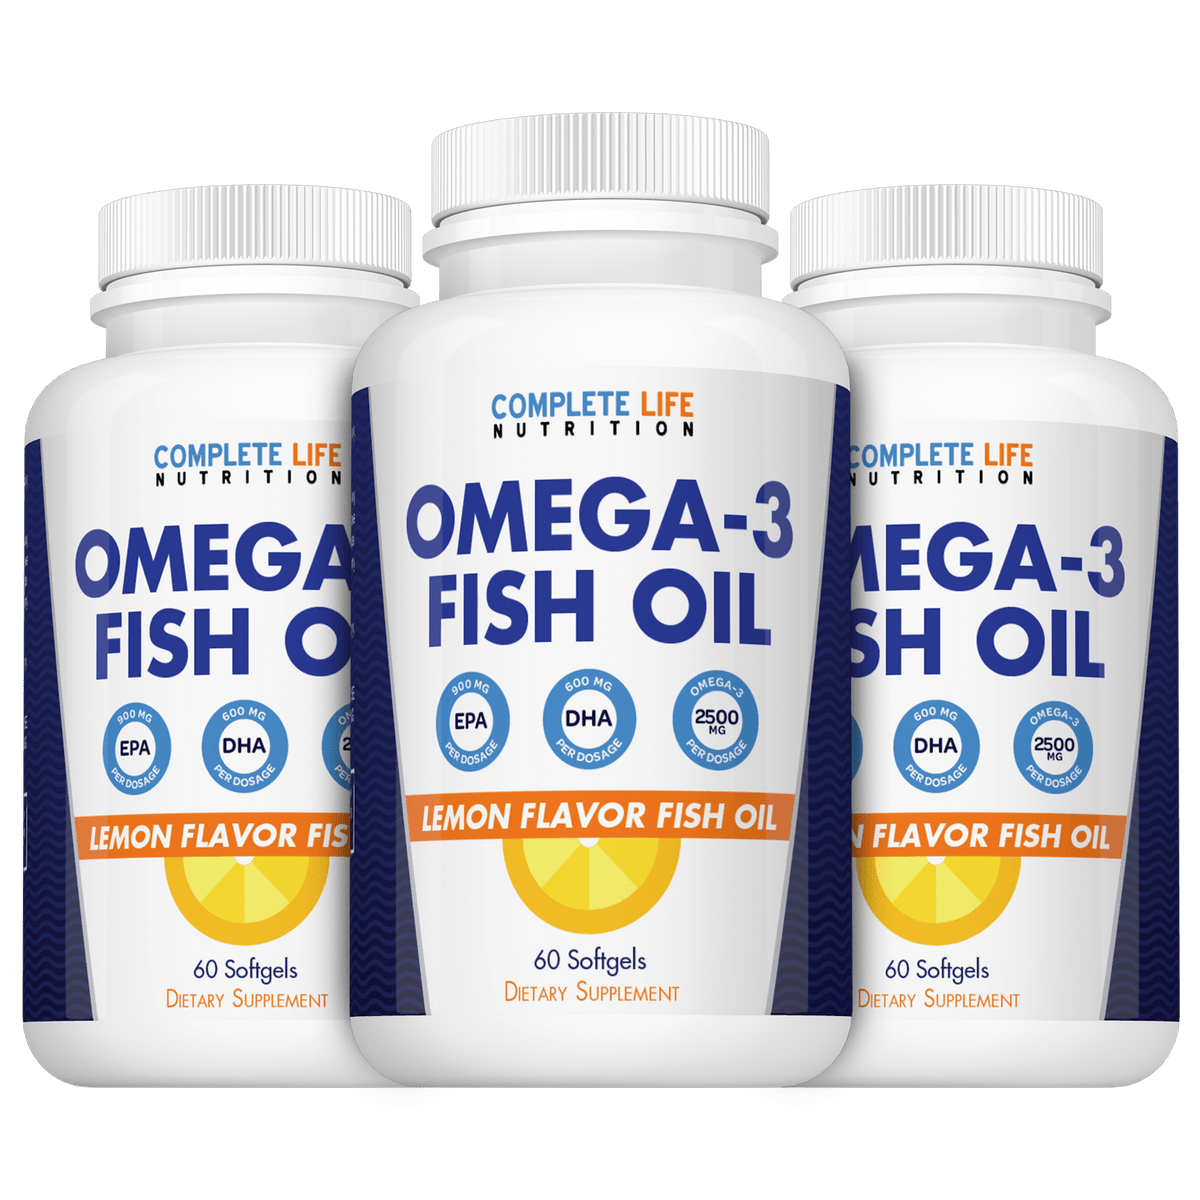 Omega 3 Fish Oil (3 Bottles + Bonus + FREE SHIPPING) - Complete Life Nutrition - High Quality Doctor Formulated Vitamins and Supplements